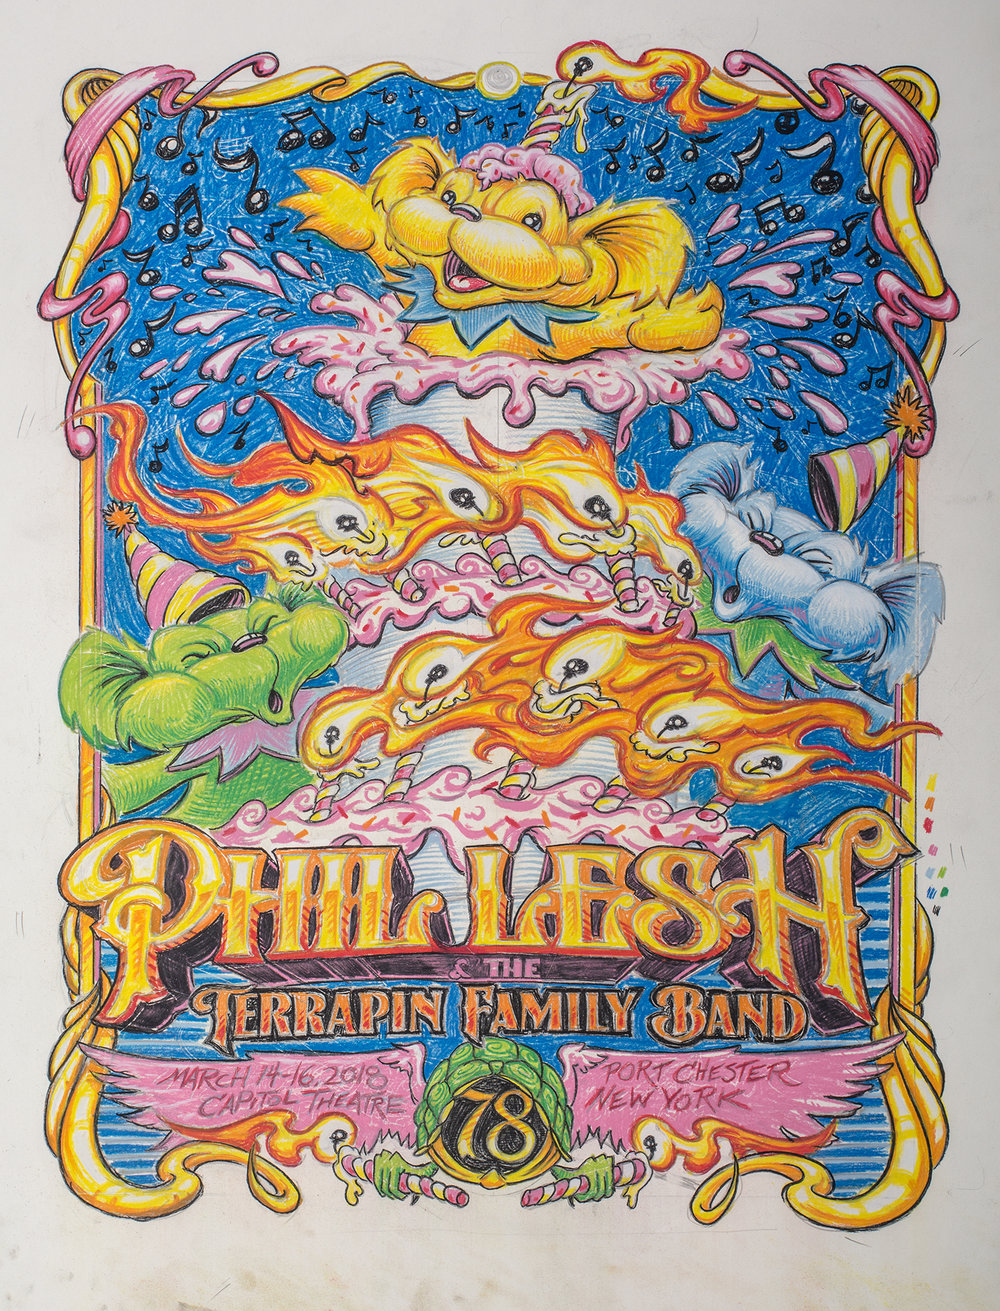 Phil Lesh 78th Birthday Celebration